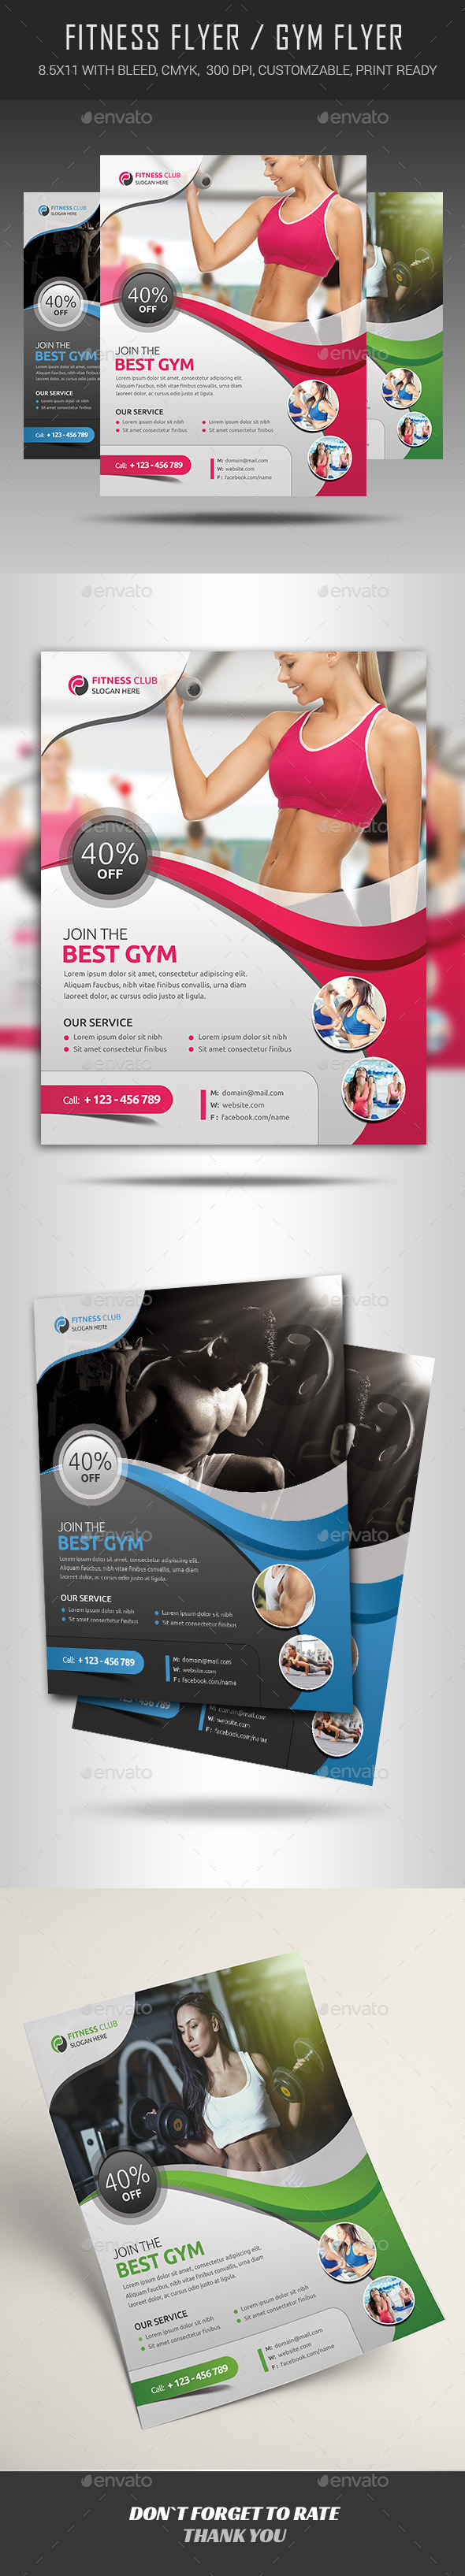 Fitness Flyer  Gym Brochures And Business Flyers